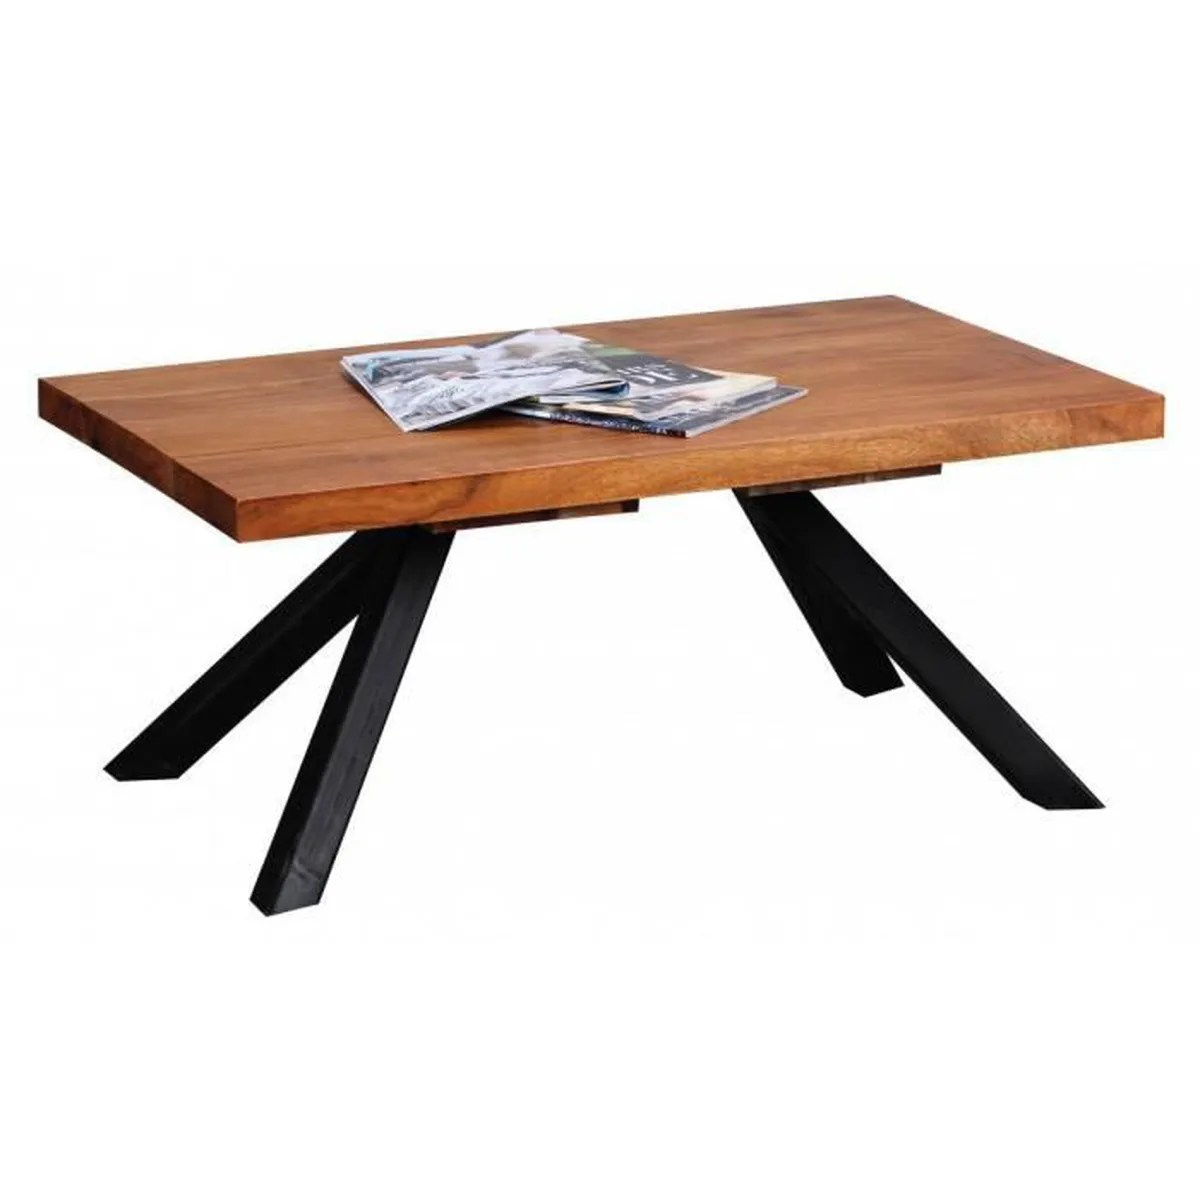 Table Basse Style Campagne Table Basse Solide Sheesham Bois 90cm Salon Table Design Sombre